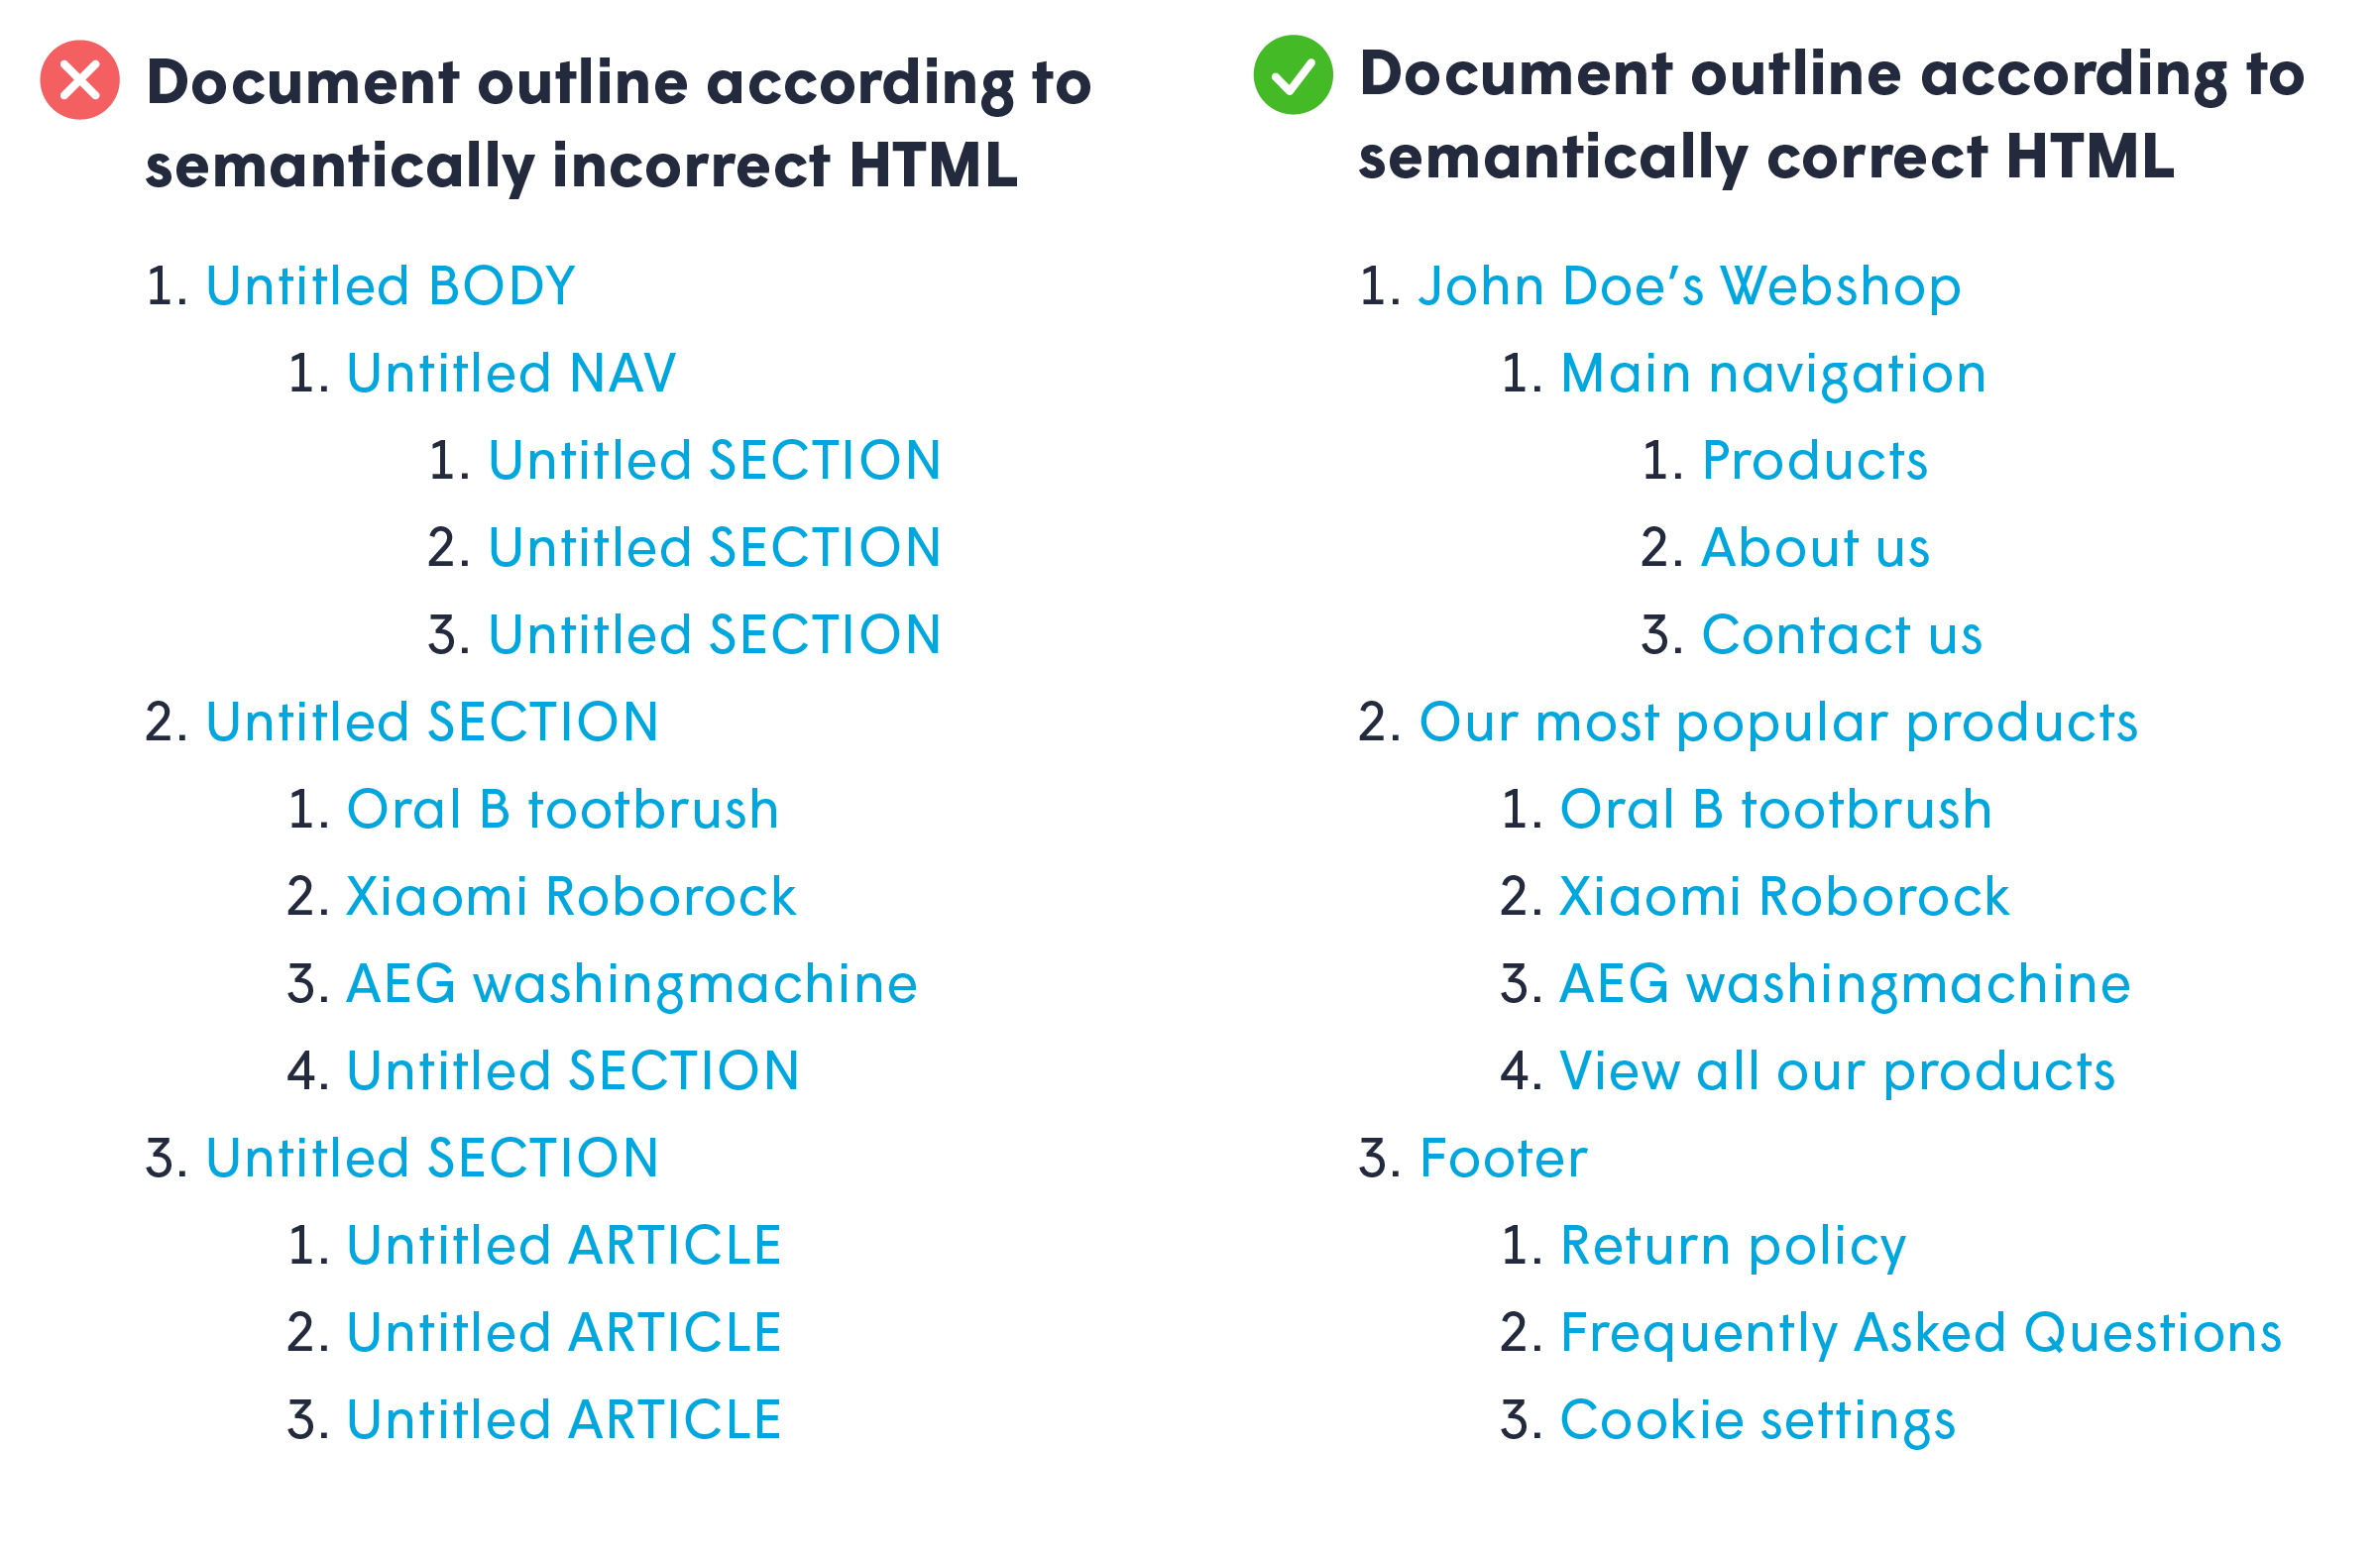 Example of how semantically incorrect HTML negatively affects the document outline of a web application.